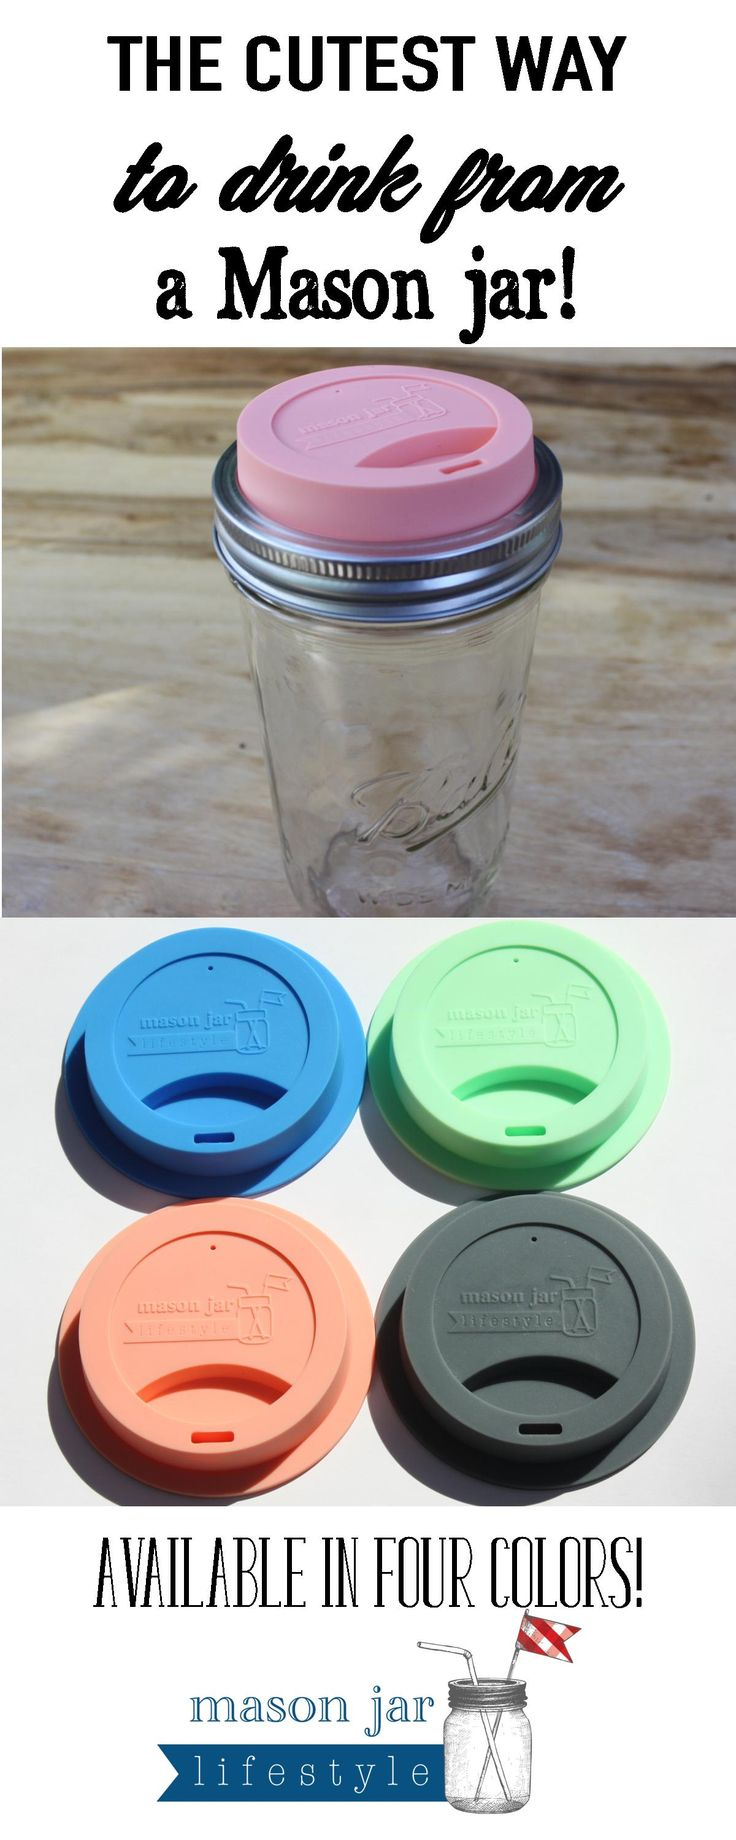 Turn any wide mouth Mason jar into a to-go cup with these adorable silicone drinking lids!